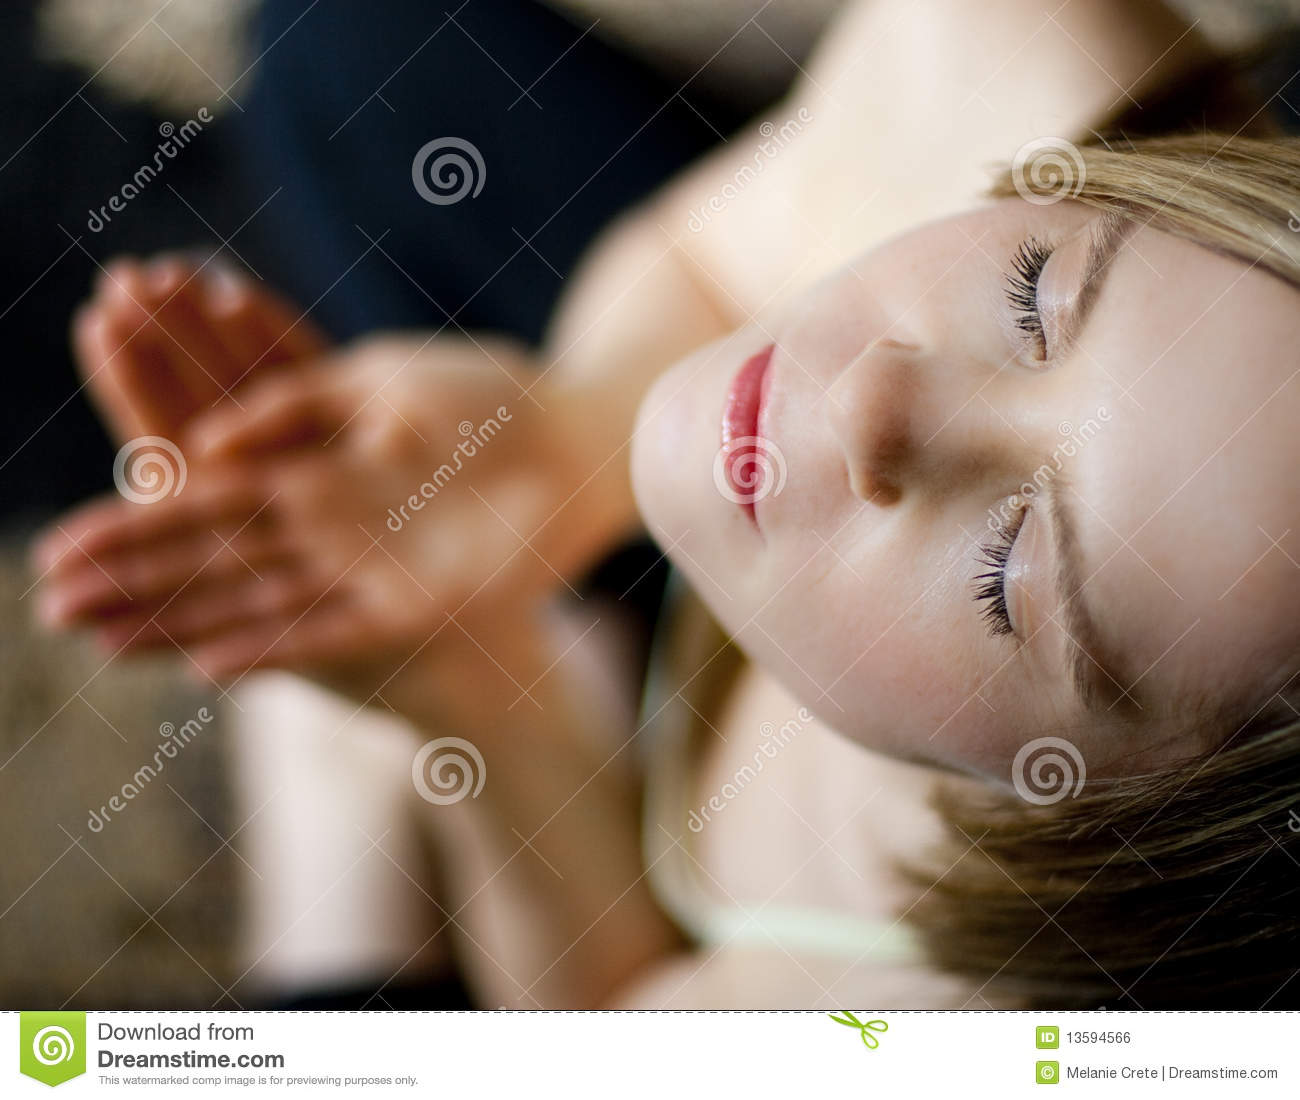 Download Girl Meditating In Yoga Stance Stock Photo - Image of posture, relaxation: 13594566